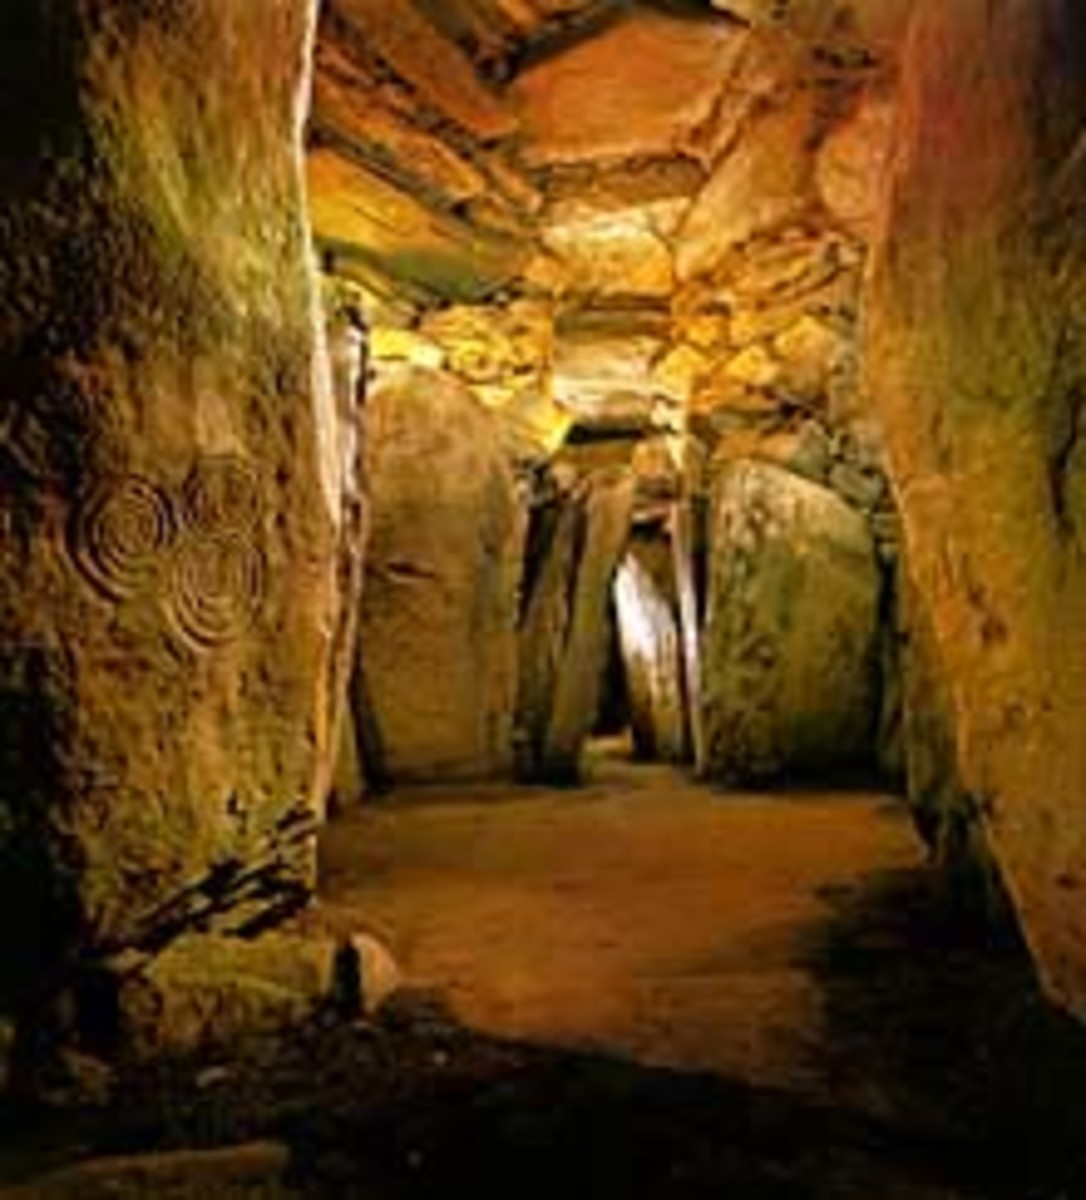 Inside the chamber at Newgrange.